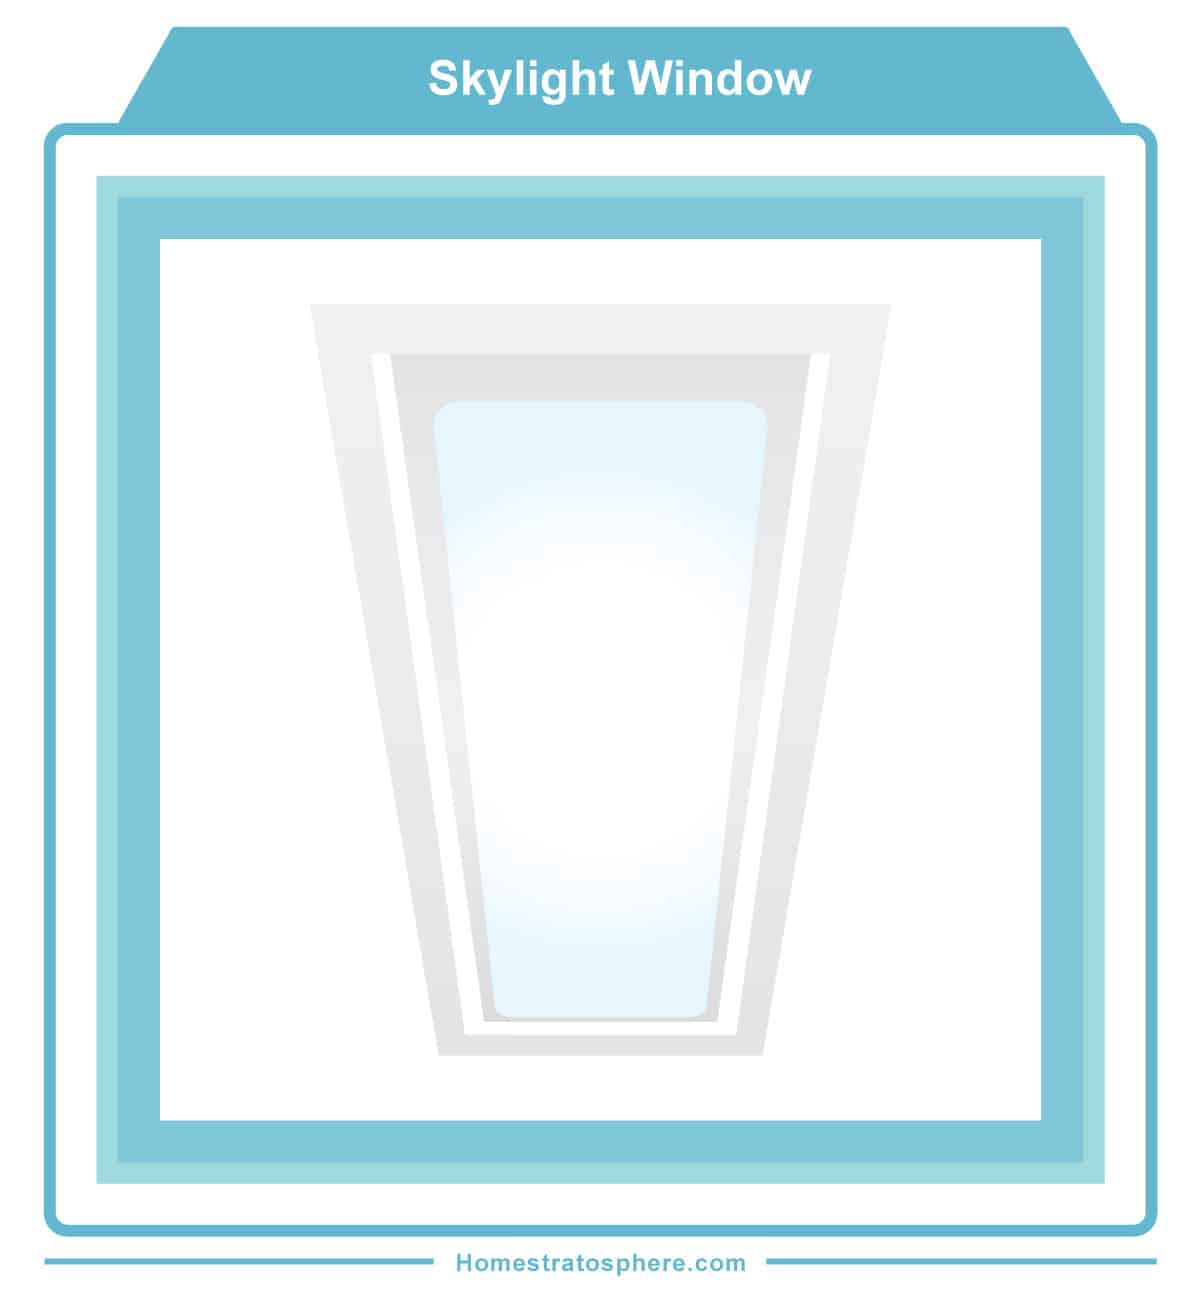 Skylight diagram